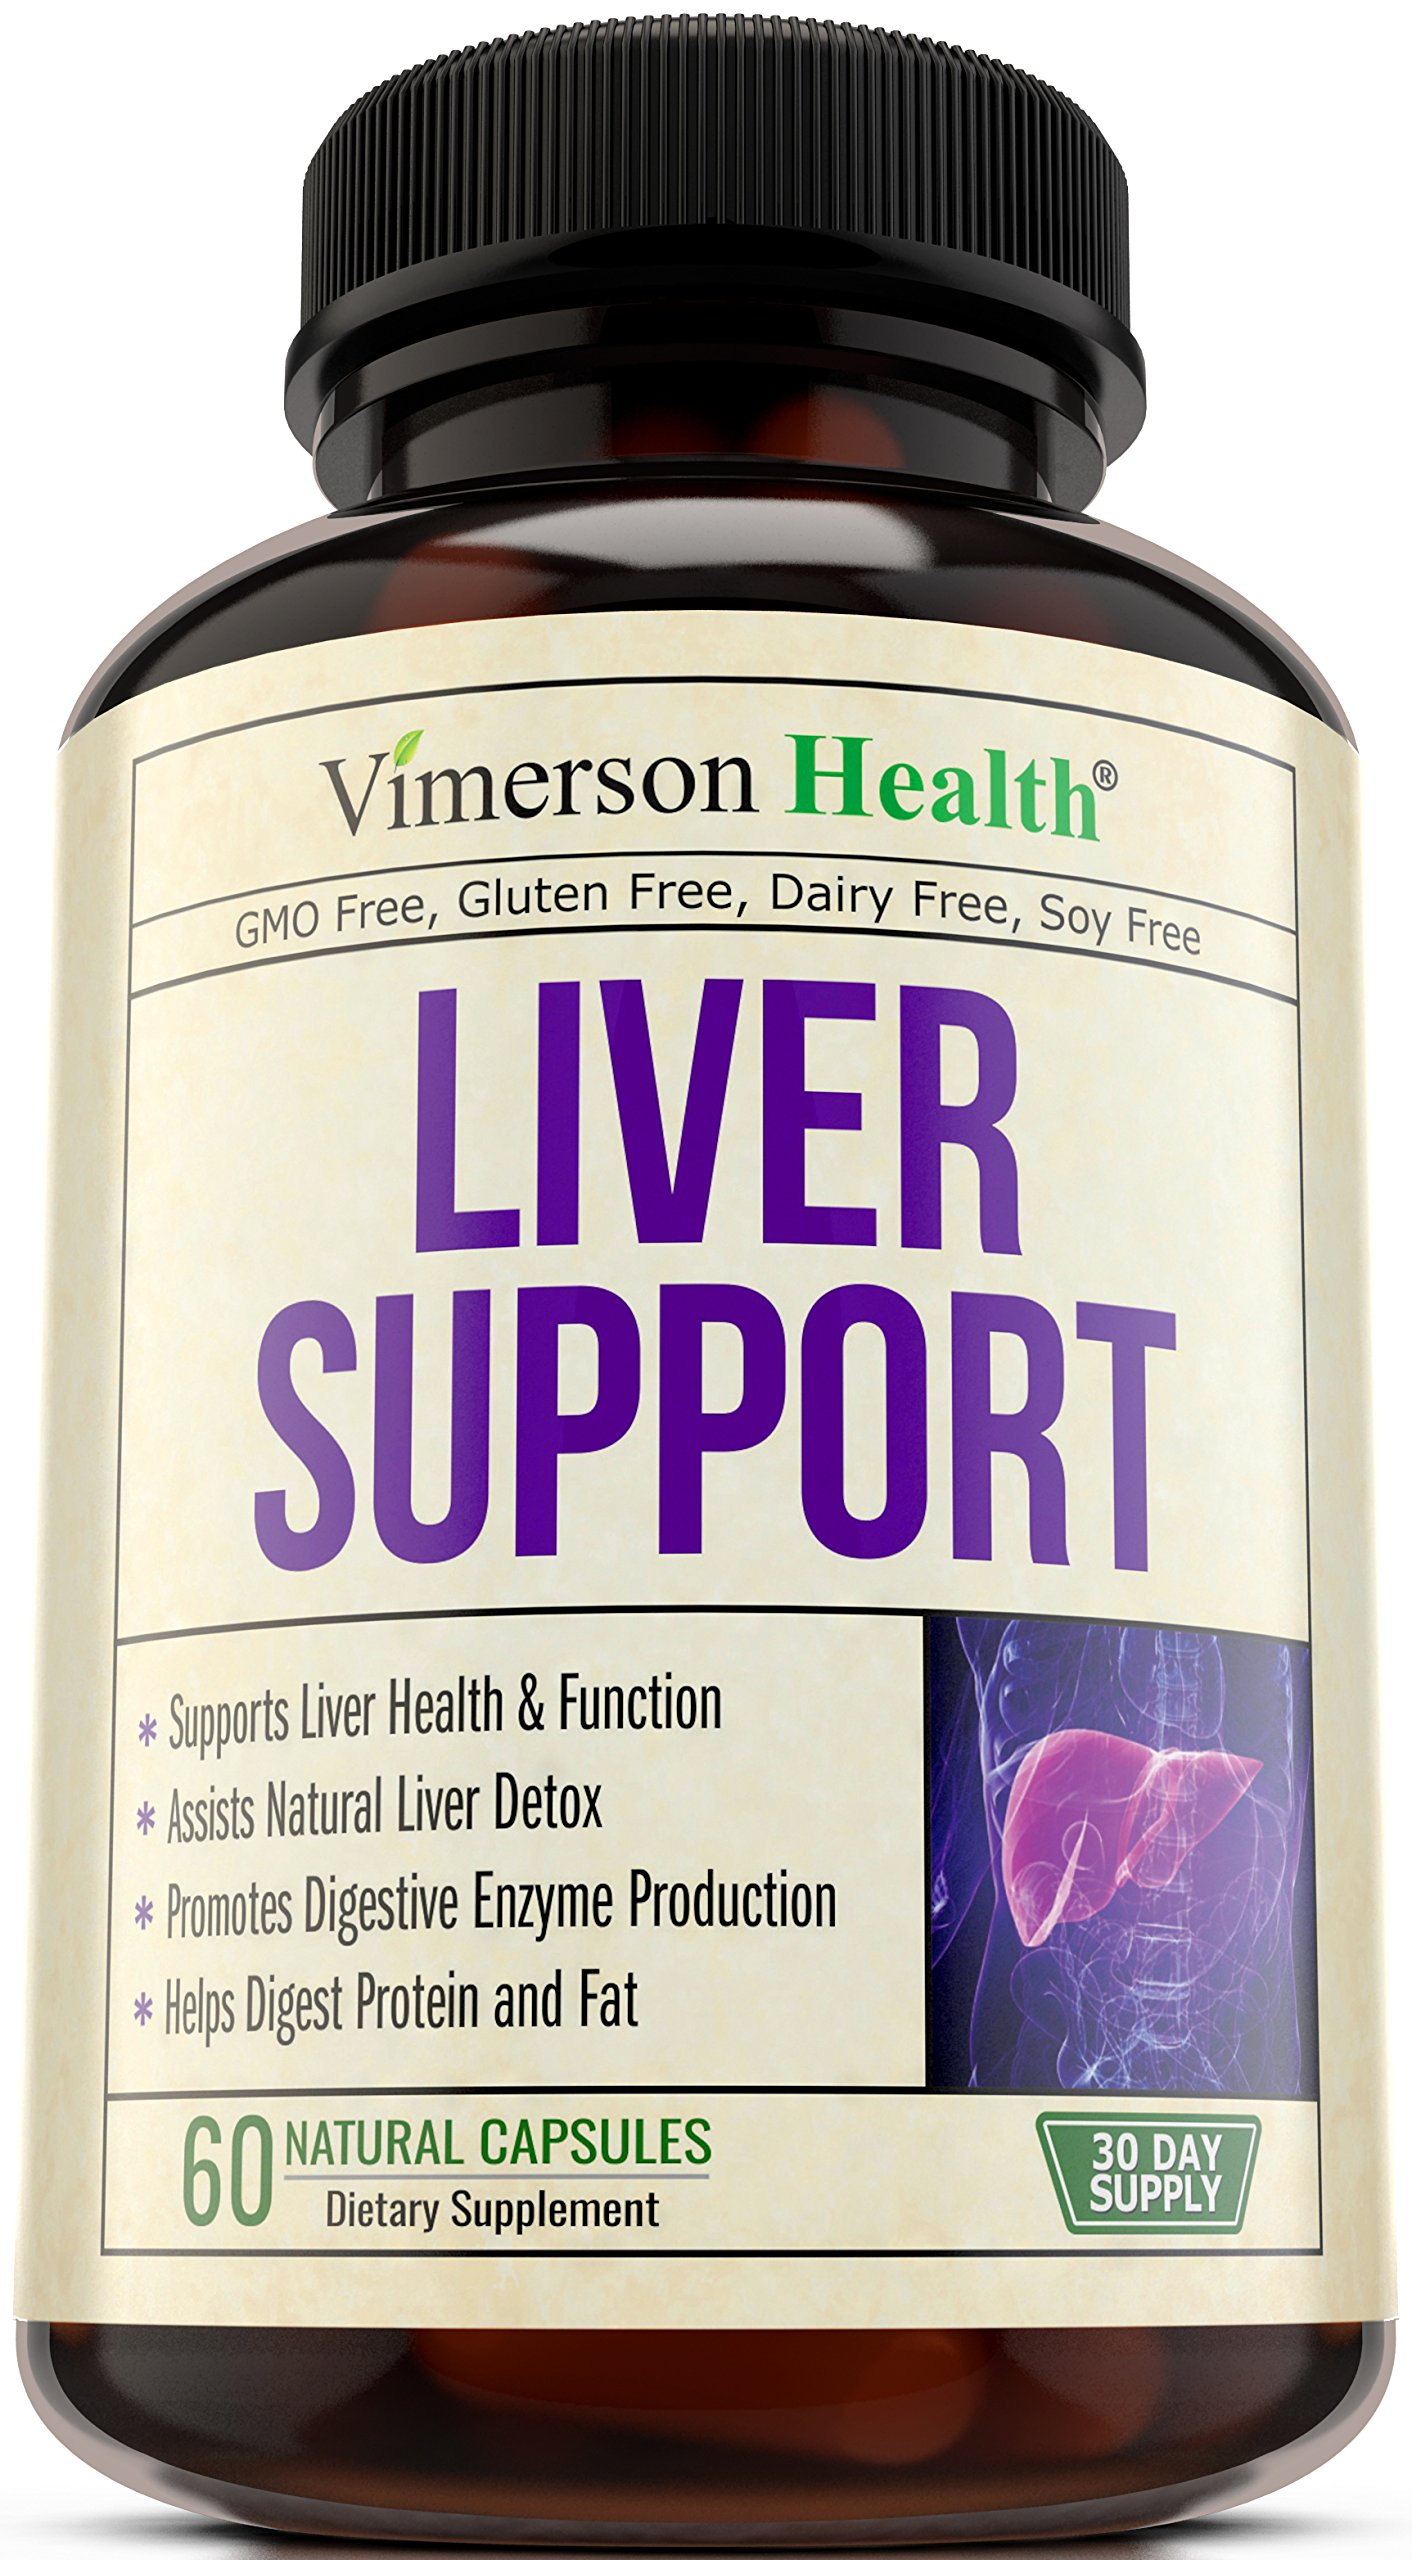 Liver Cleanse & Detox Support Supplement - Natural Non-Gmo Herbal Blend with Milk Thistle + Artichoke Extract + Turmeric + Ginger + Beet Root + Alfalfa + Zinc + Choline + Grape Seed + Celery Seed